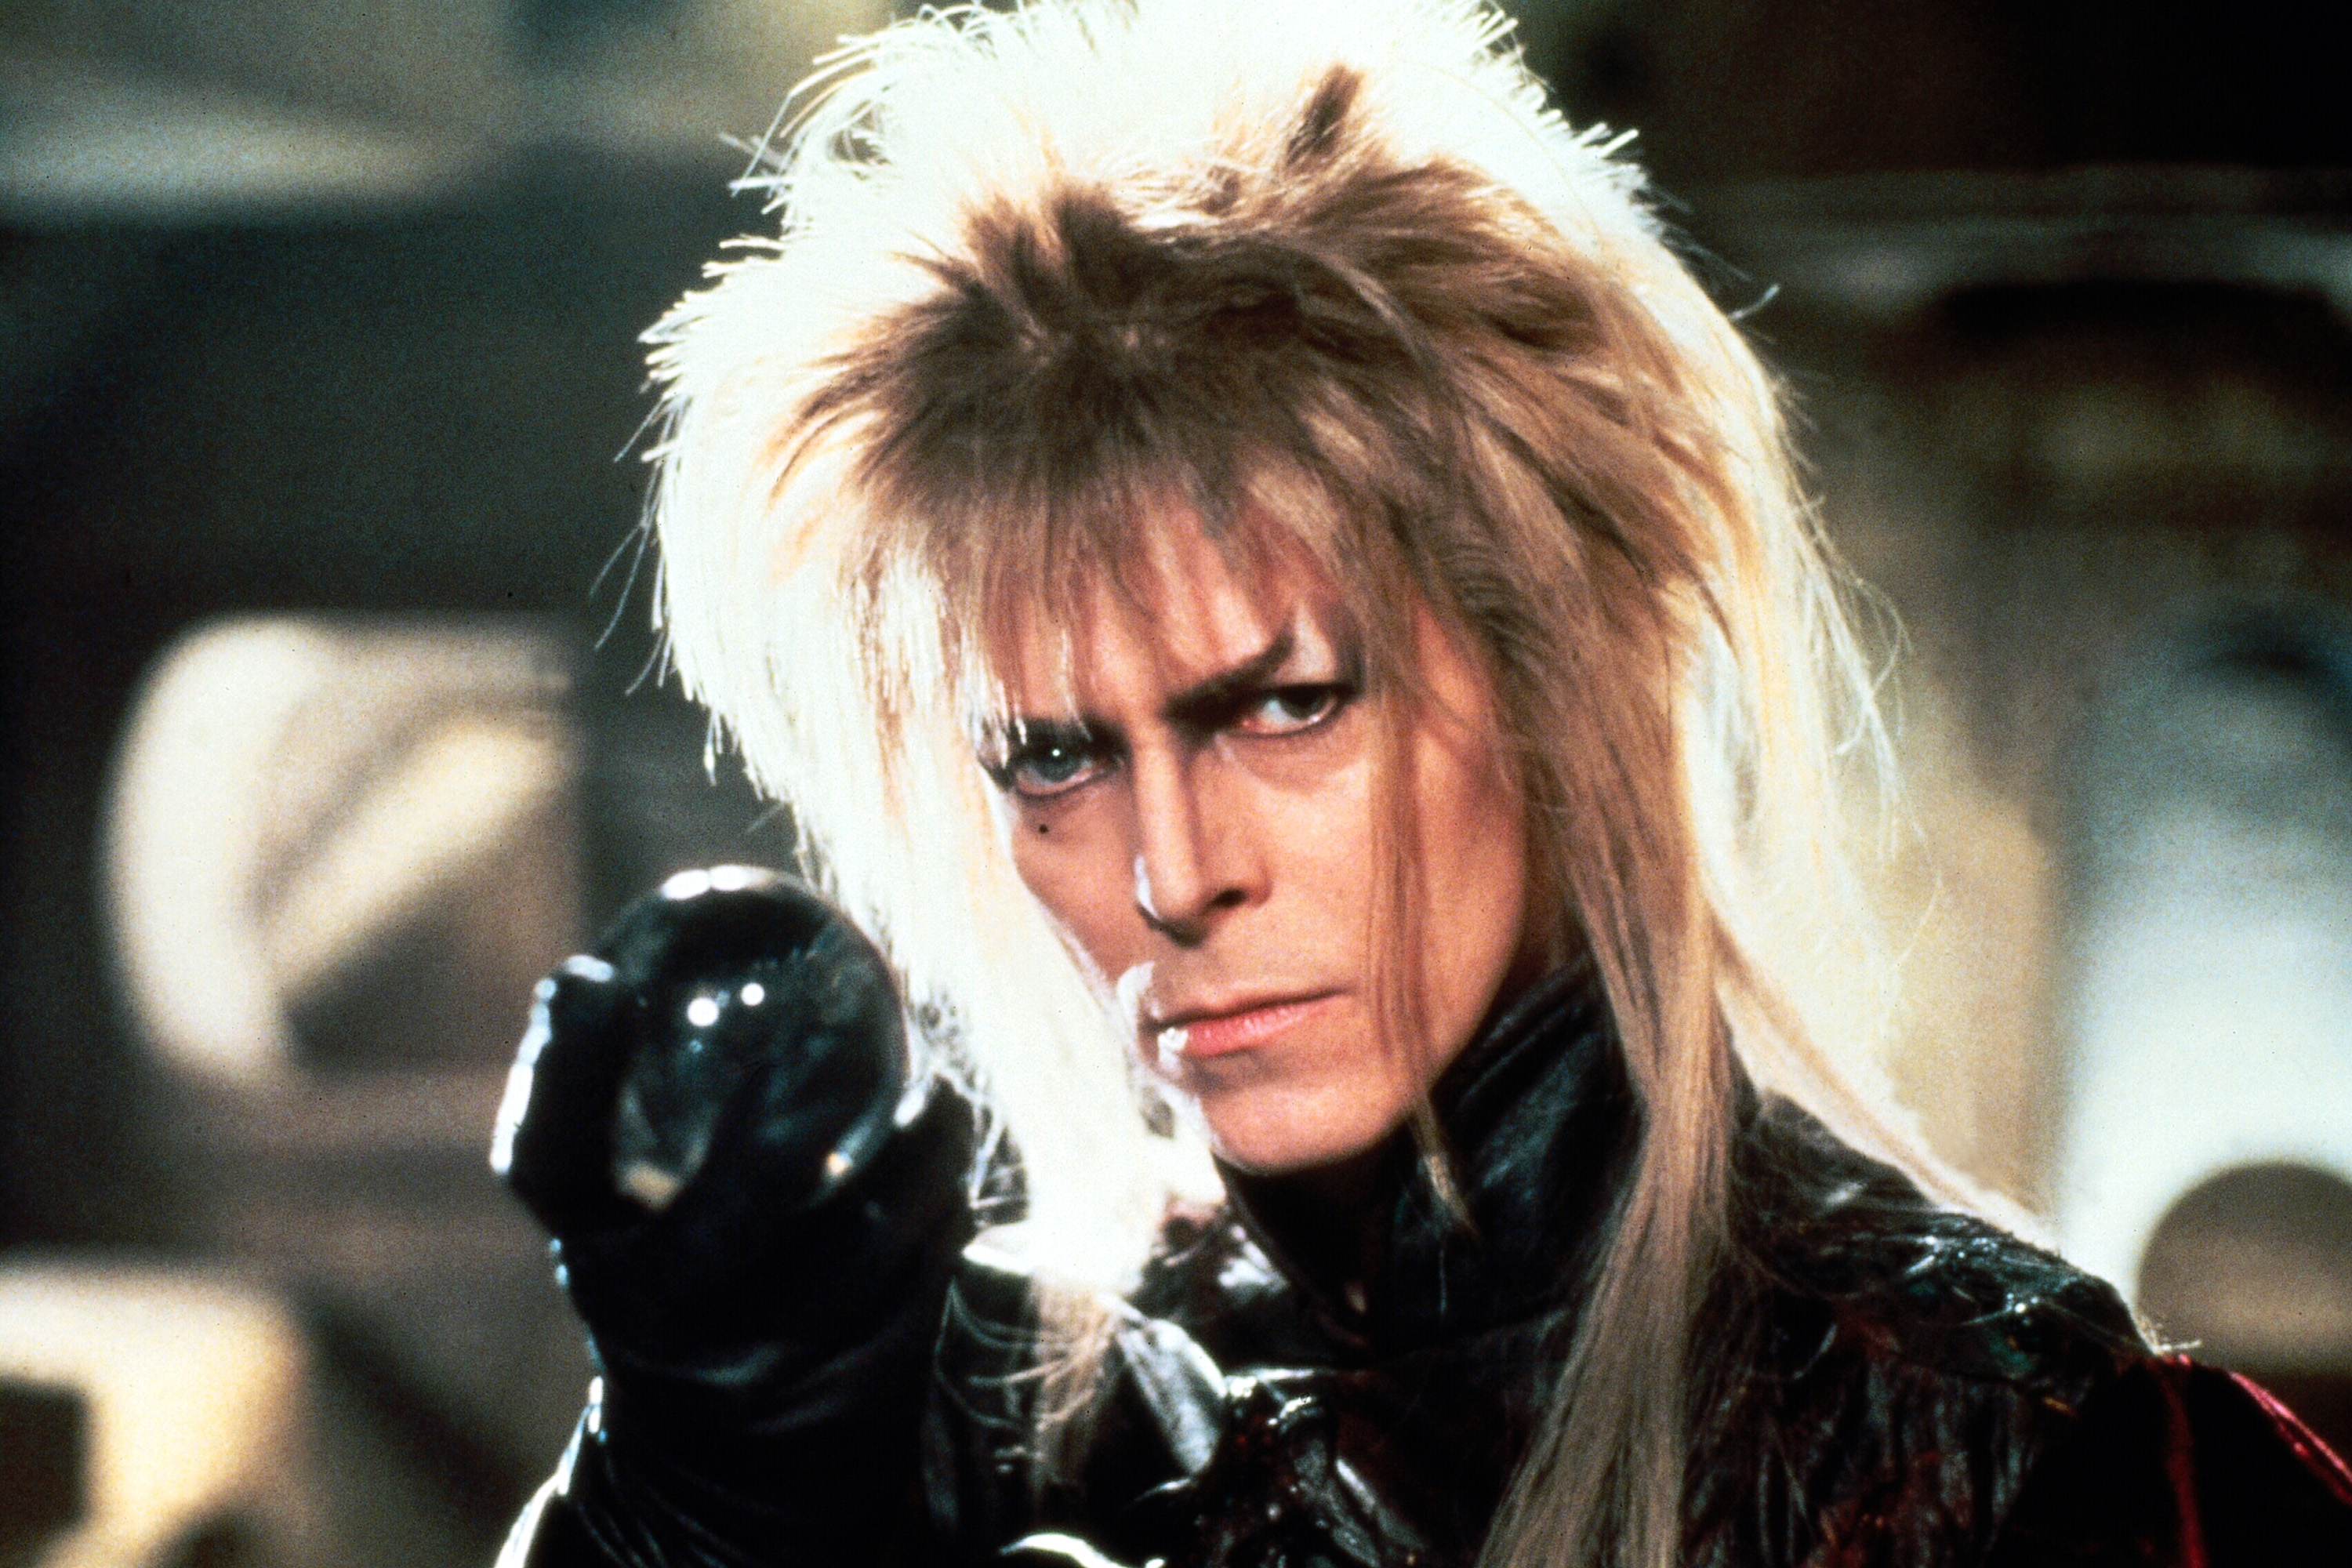 David Bowie as Jareth, the Goblin King in Labyrinth in 1986.